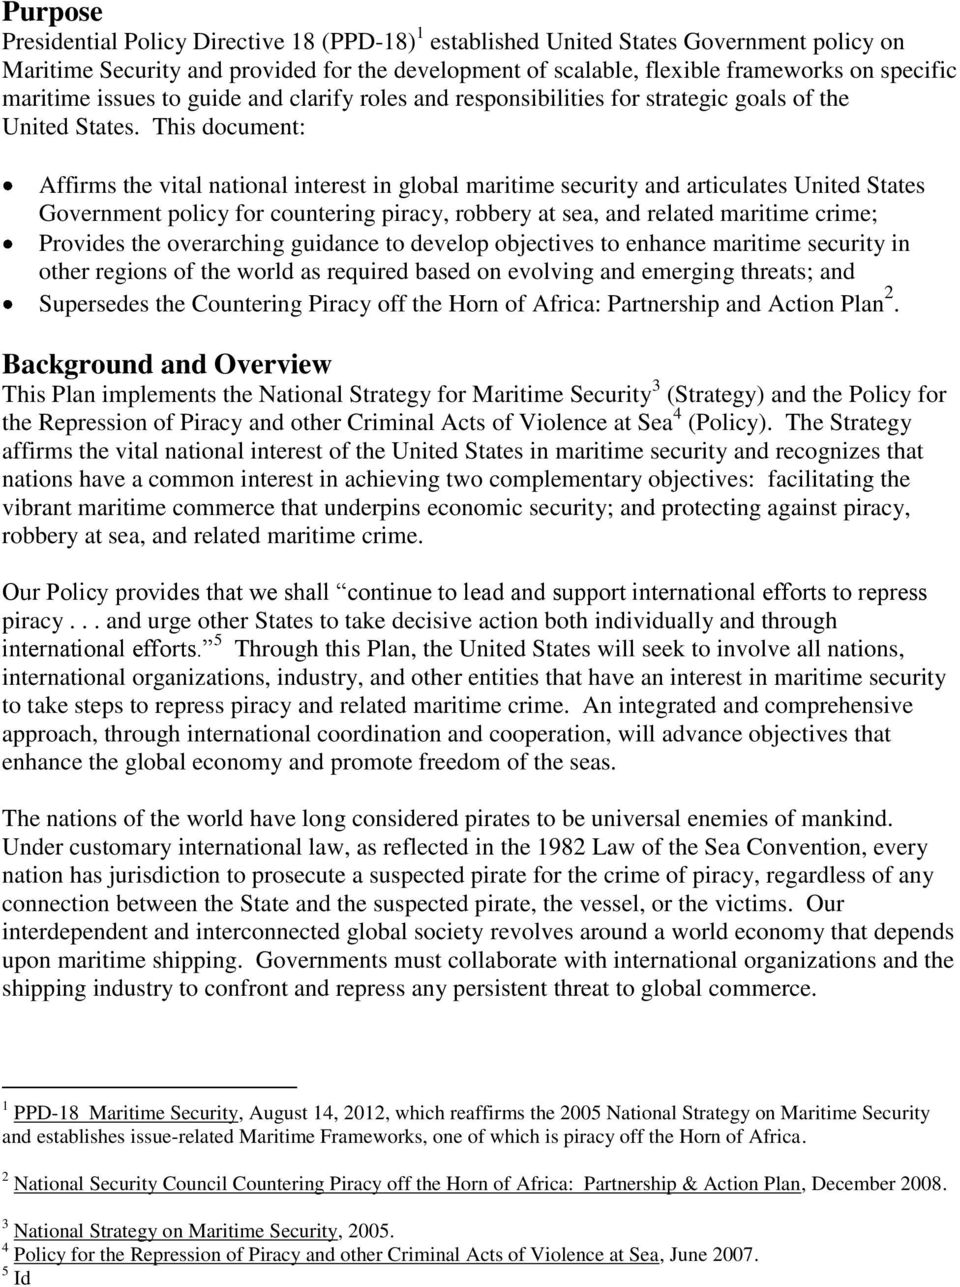 This document: Affirms the vital national interest in global maritime security and articulates United States Government policy for countering piracy, robbery at sea, and related maritime crime;